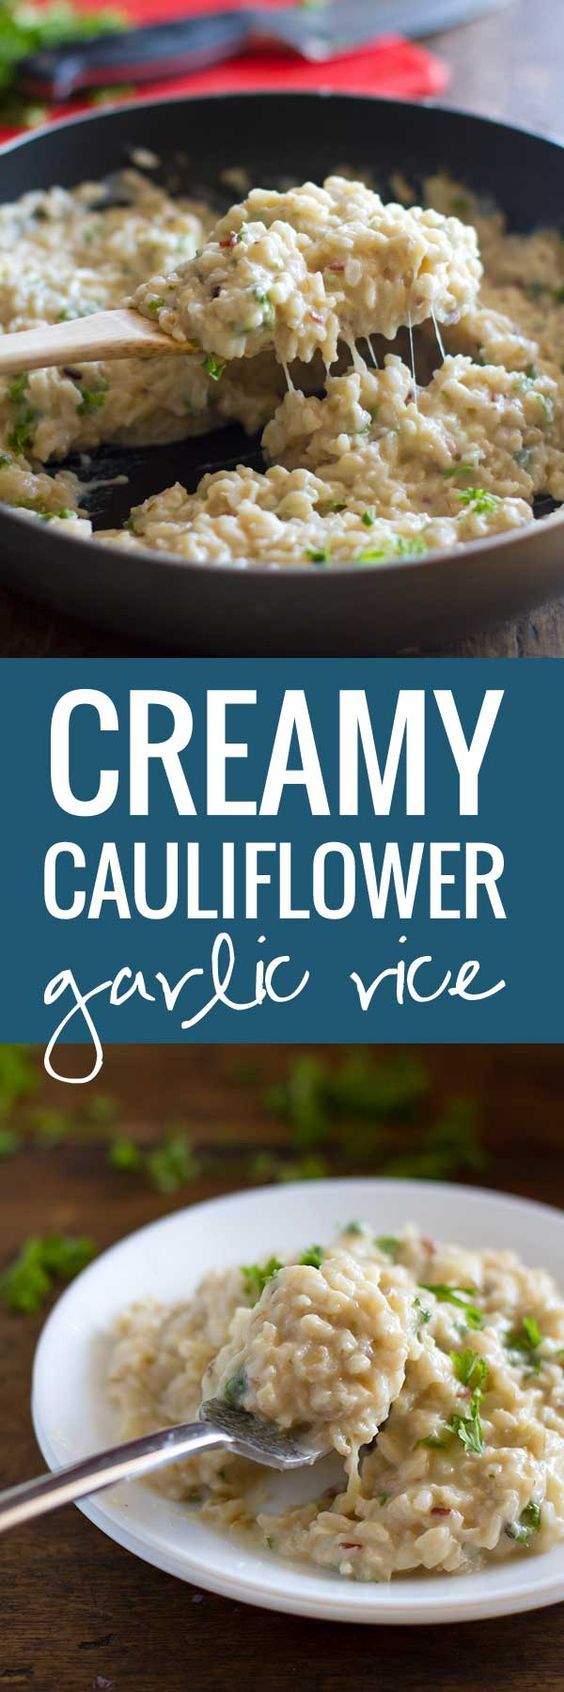 Creamy Cauliflower Garlic Rice - A delicious and healthy combination | pinchofyum.com